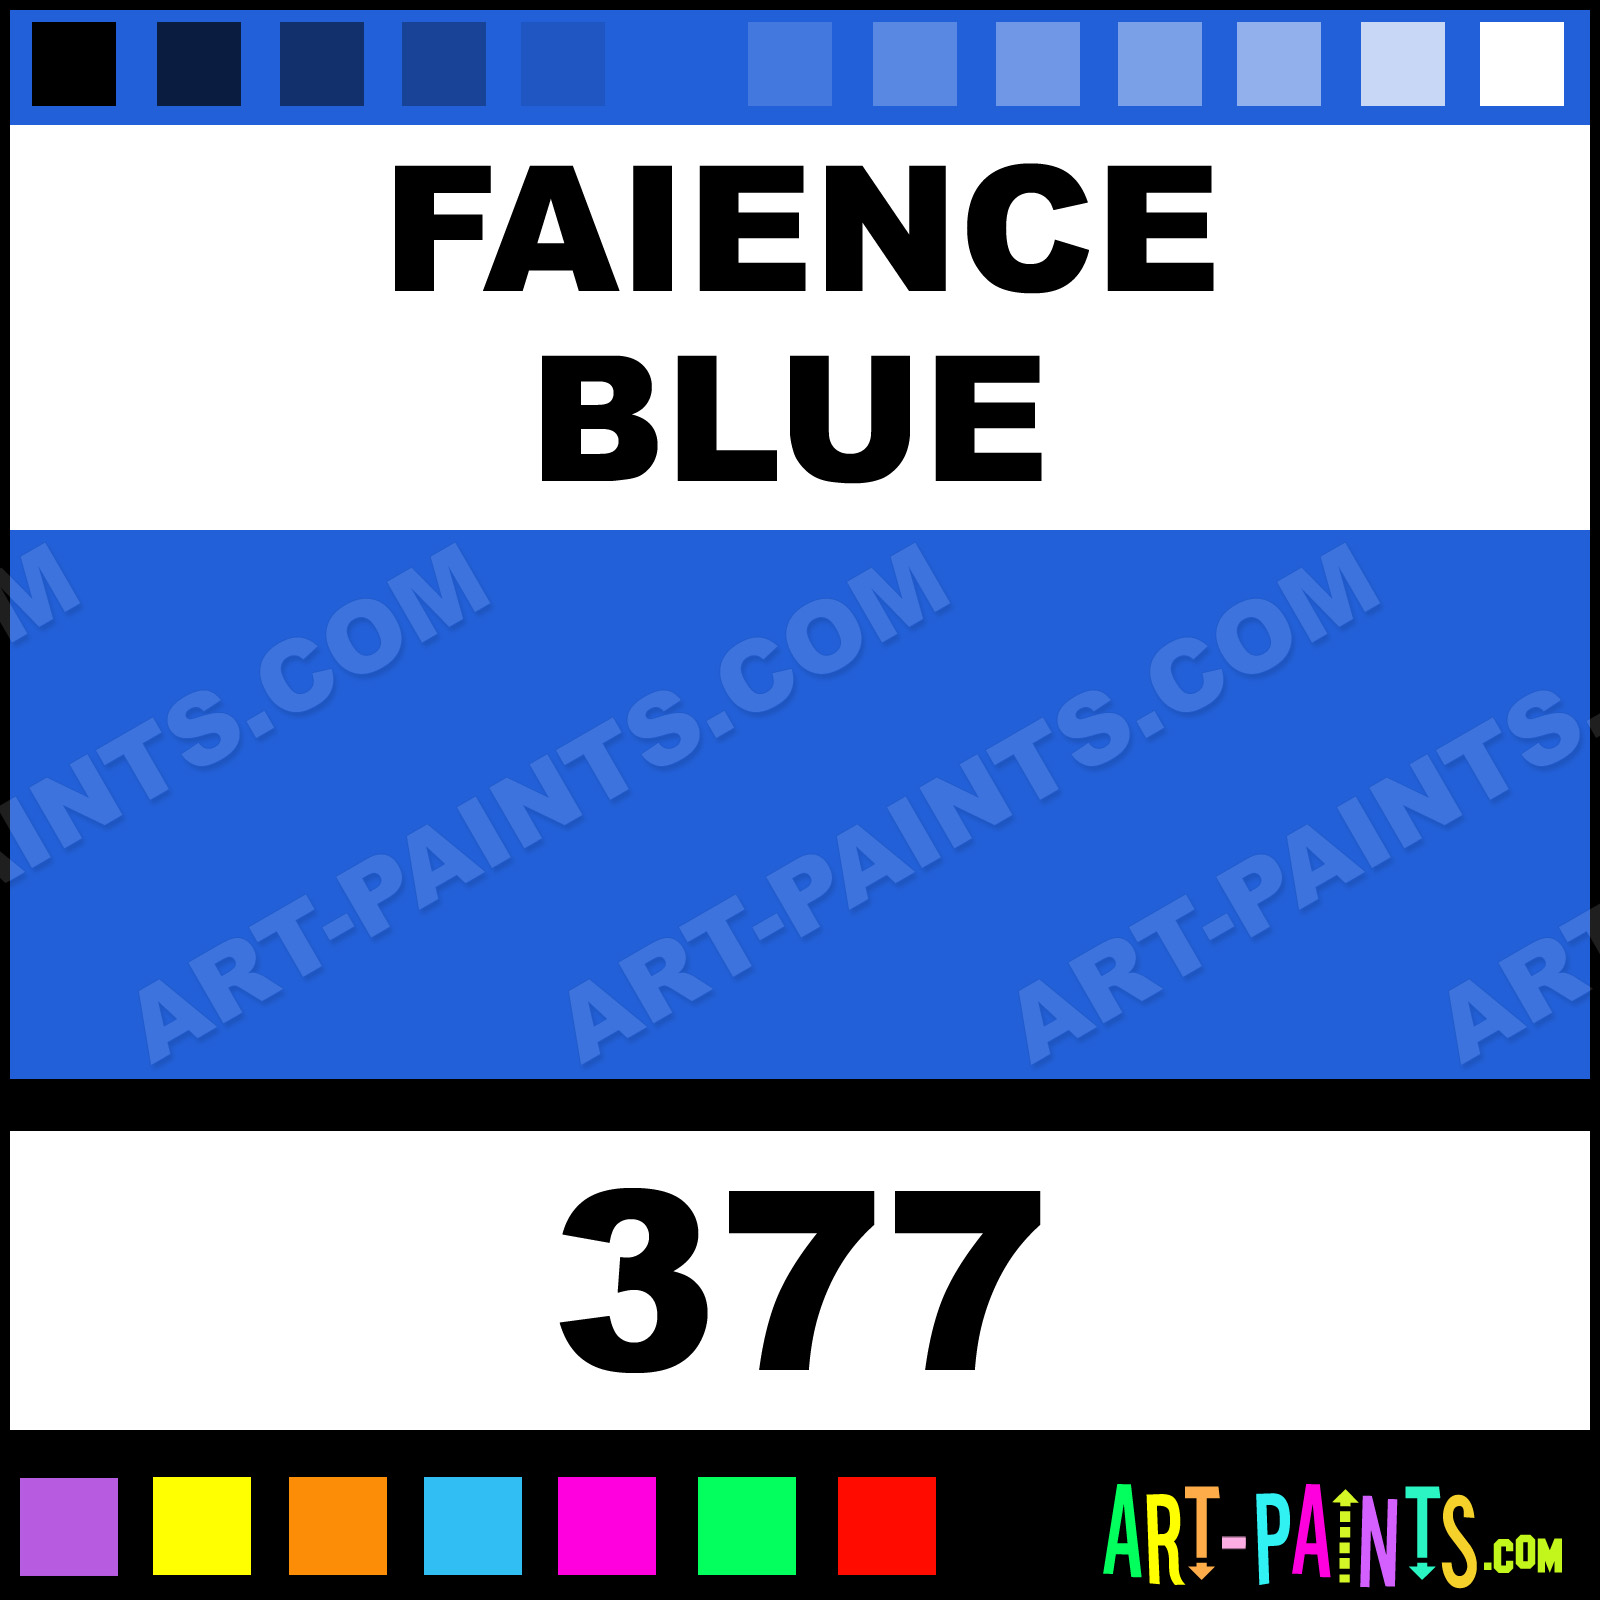 Faience Blue Blu Watercolor Paints 377 Faience Blue Paint Faience Blue Color Maimeri Blu